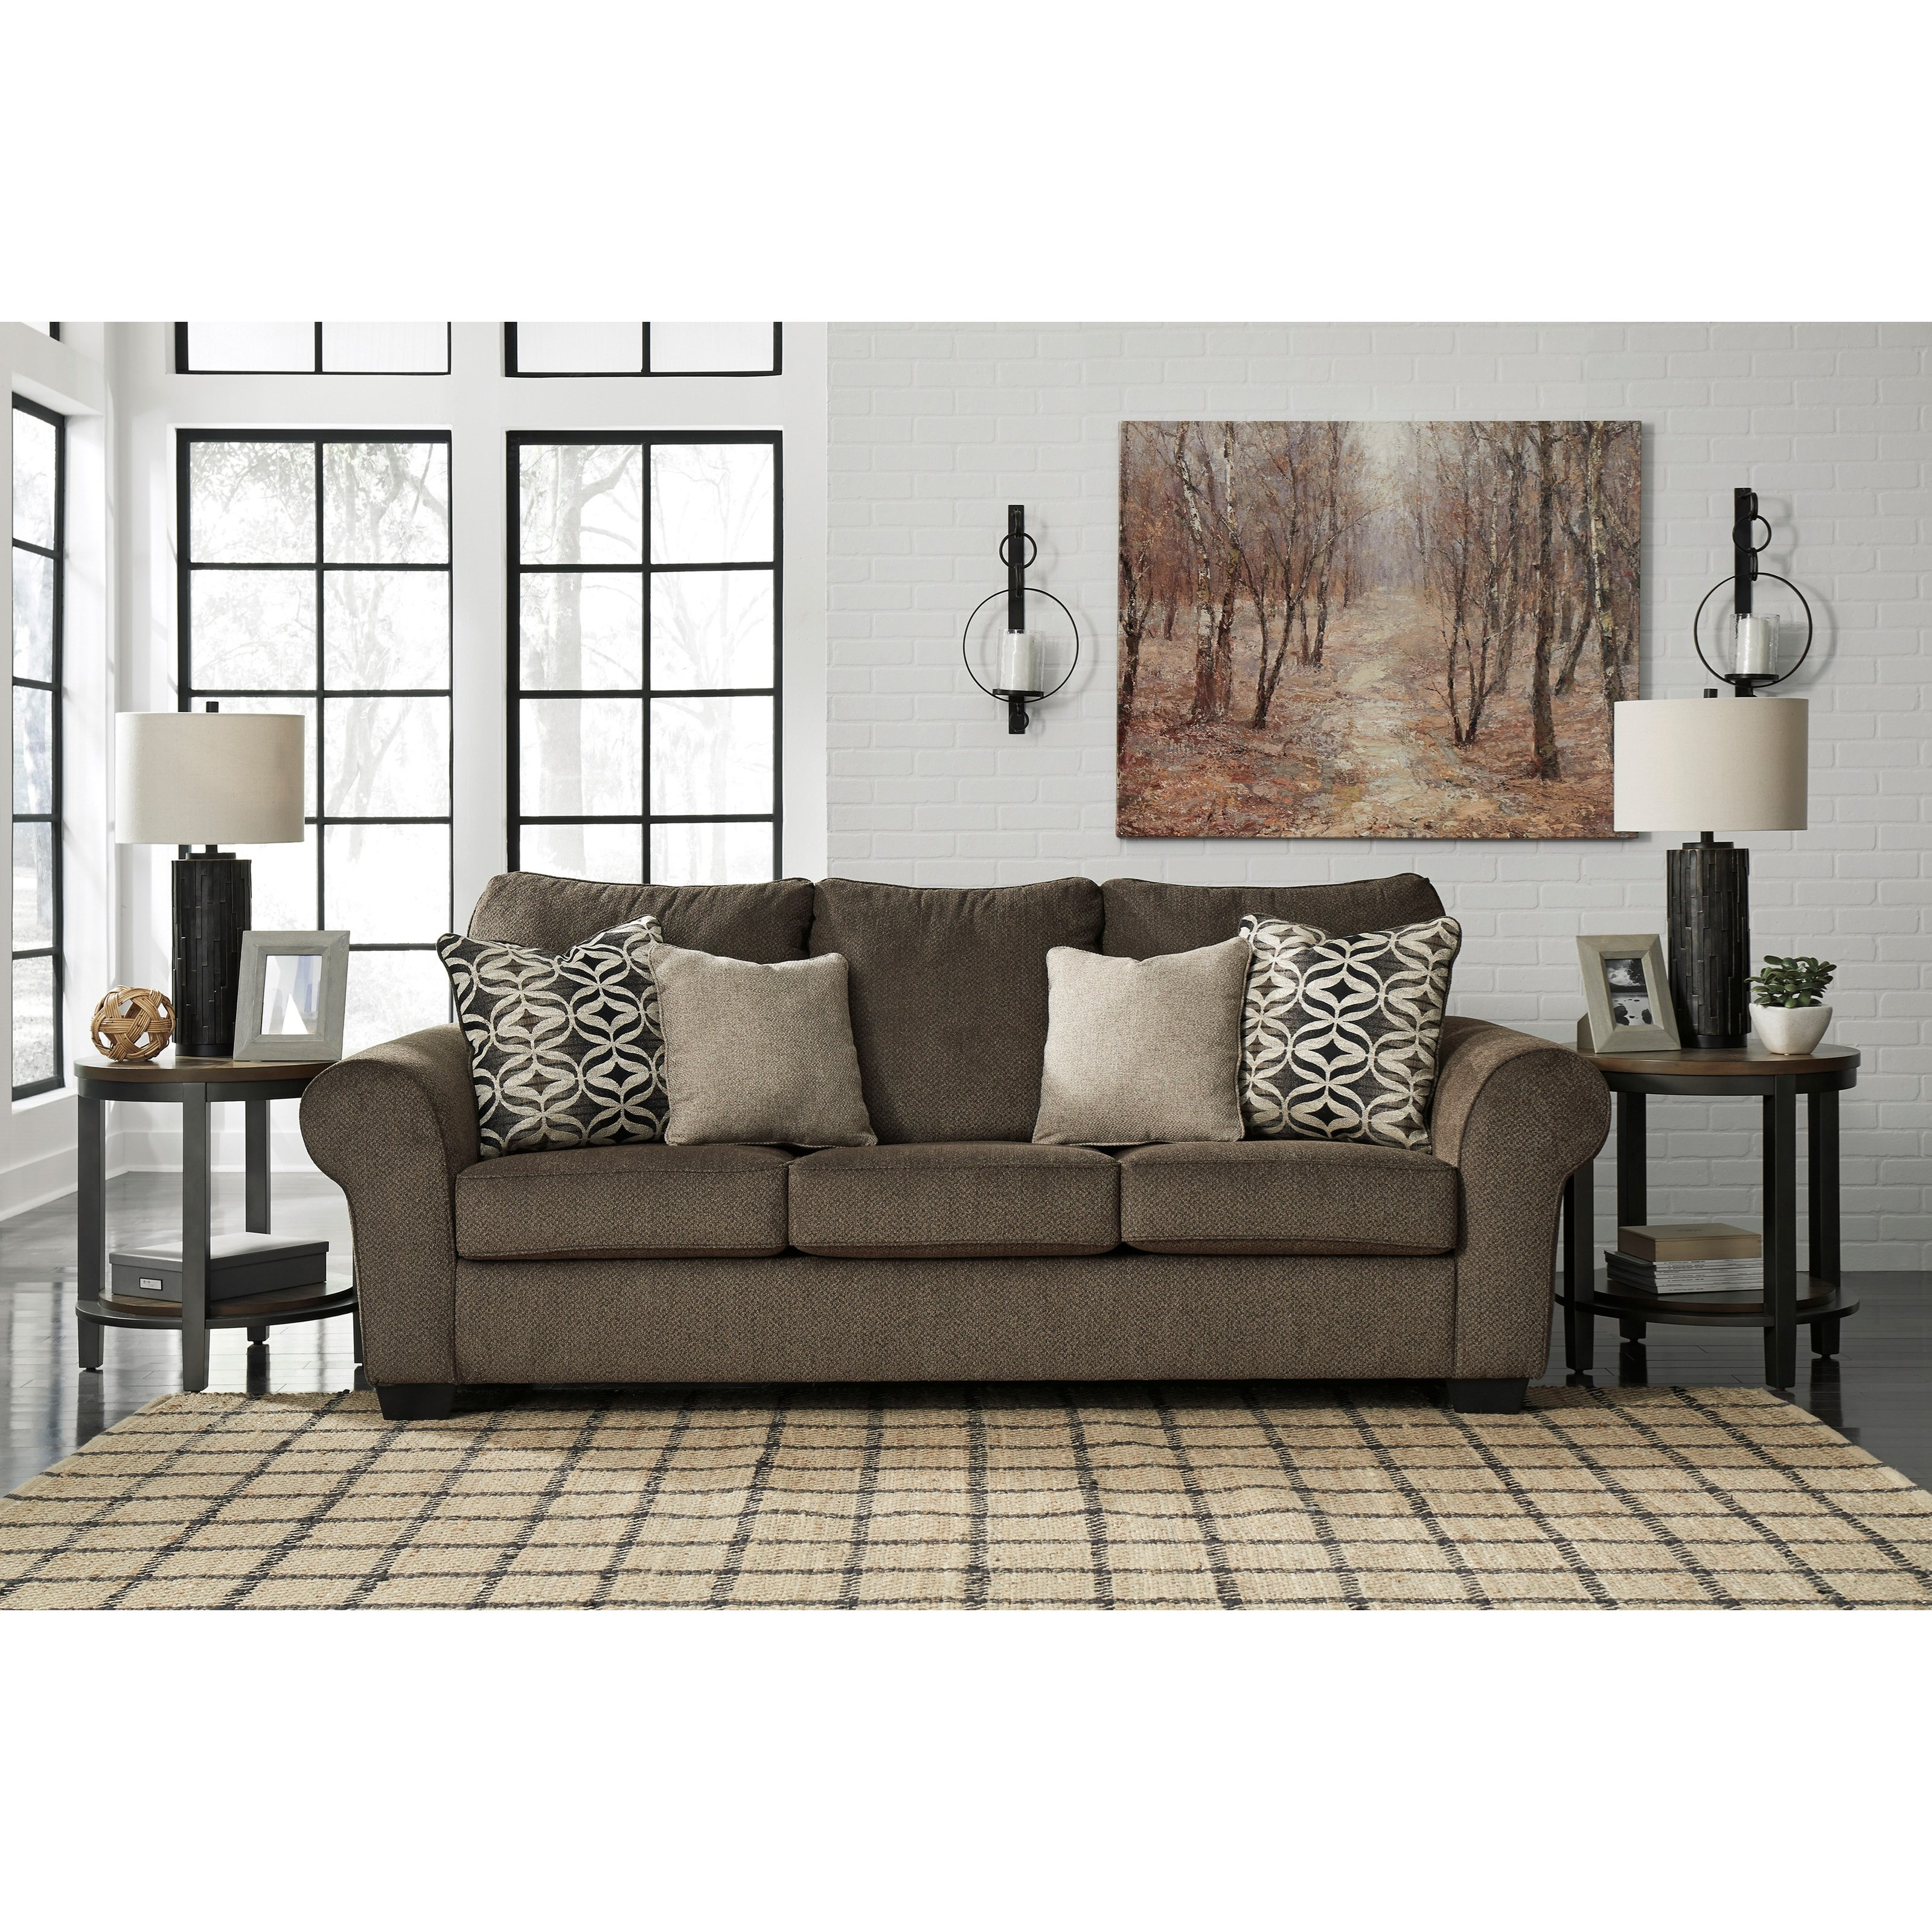 Signature Design By Ashley Nesso Sofa With Rolled Arms